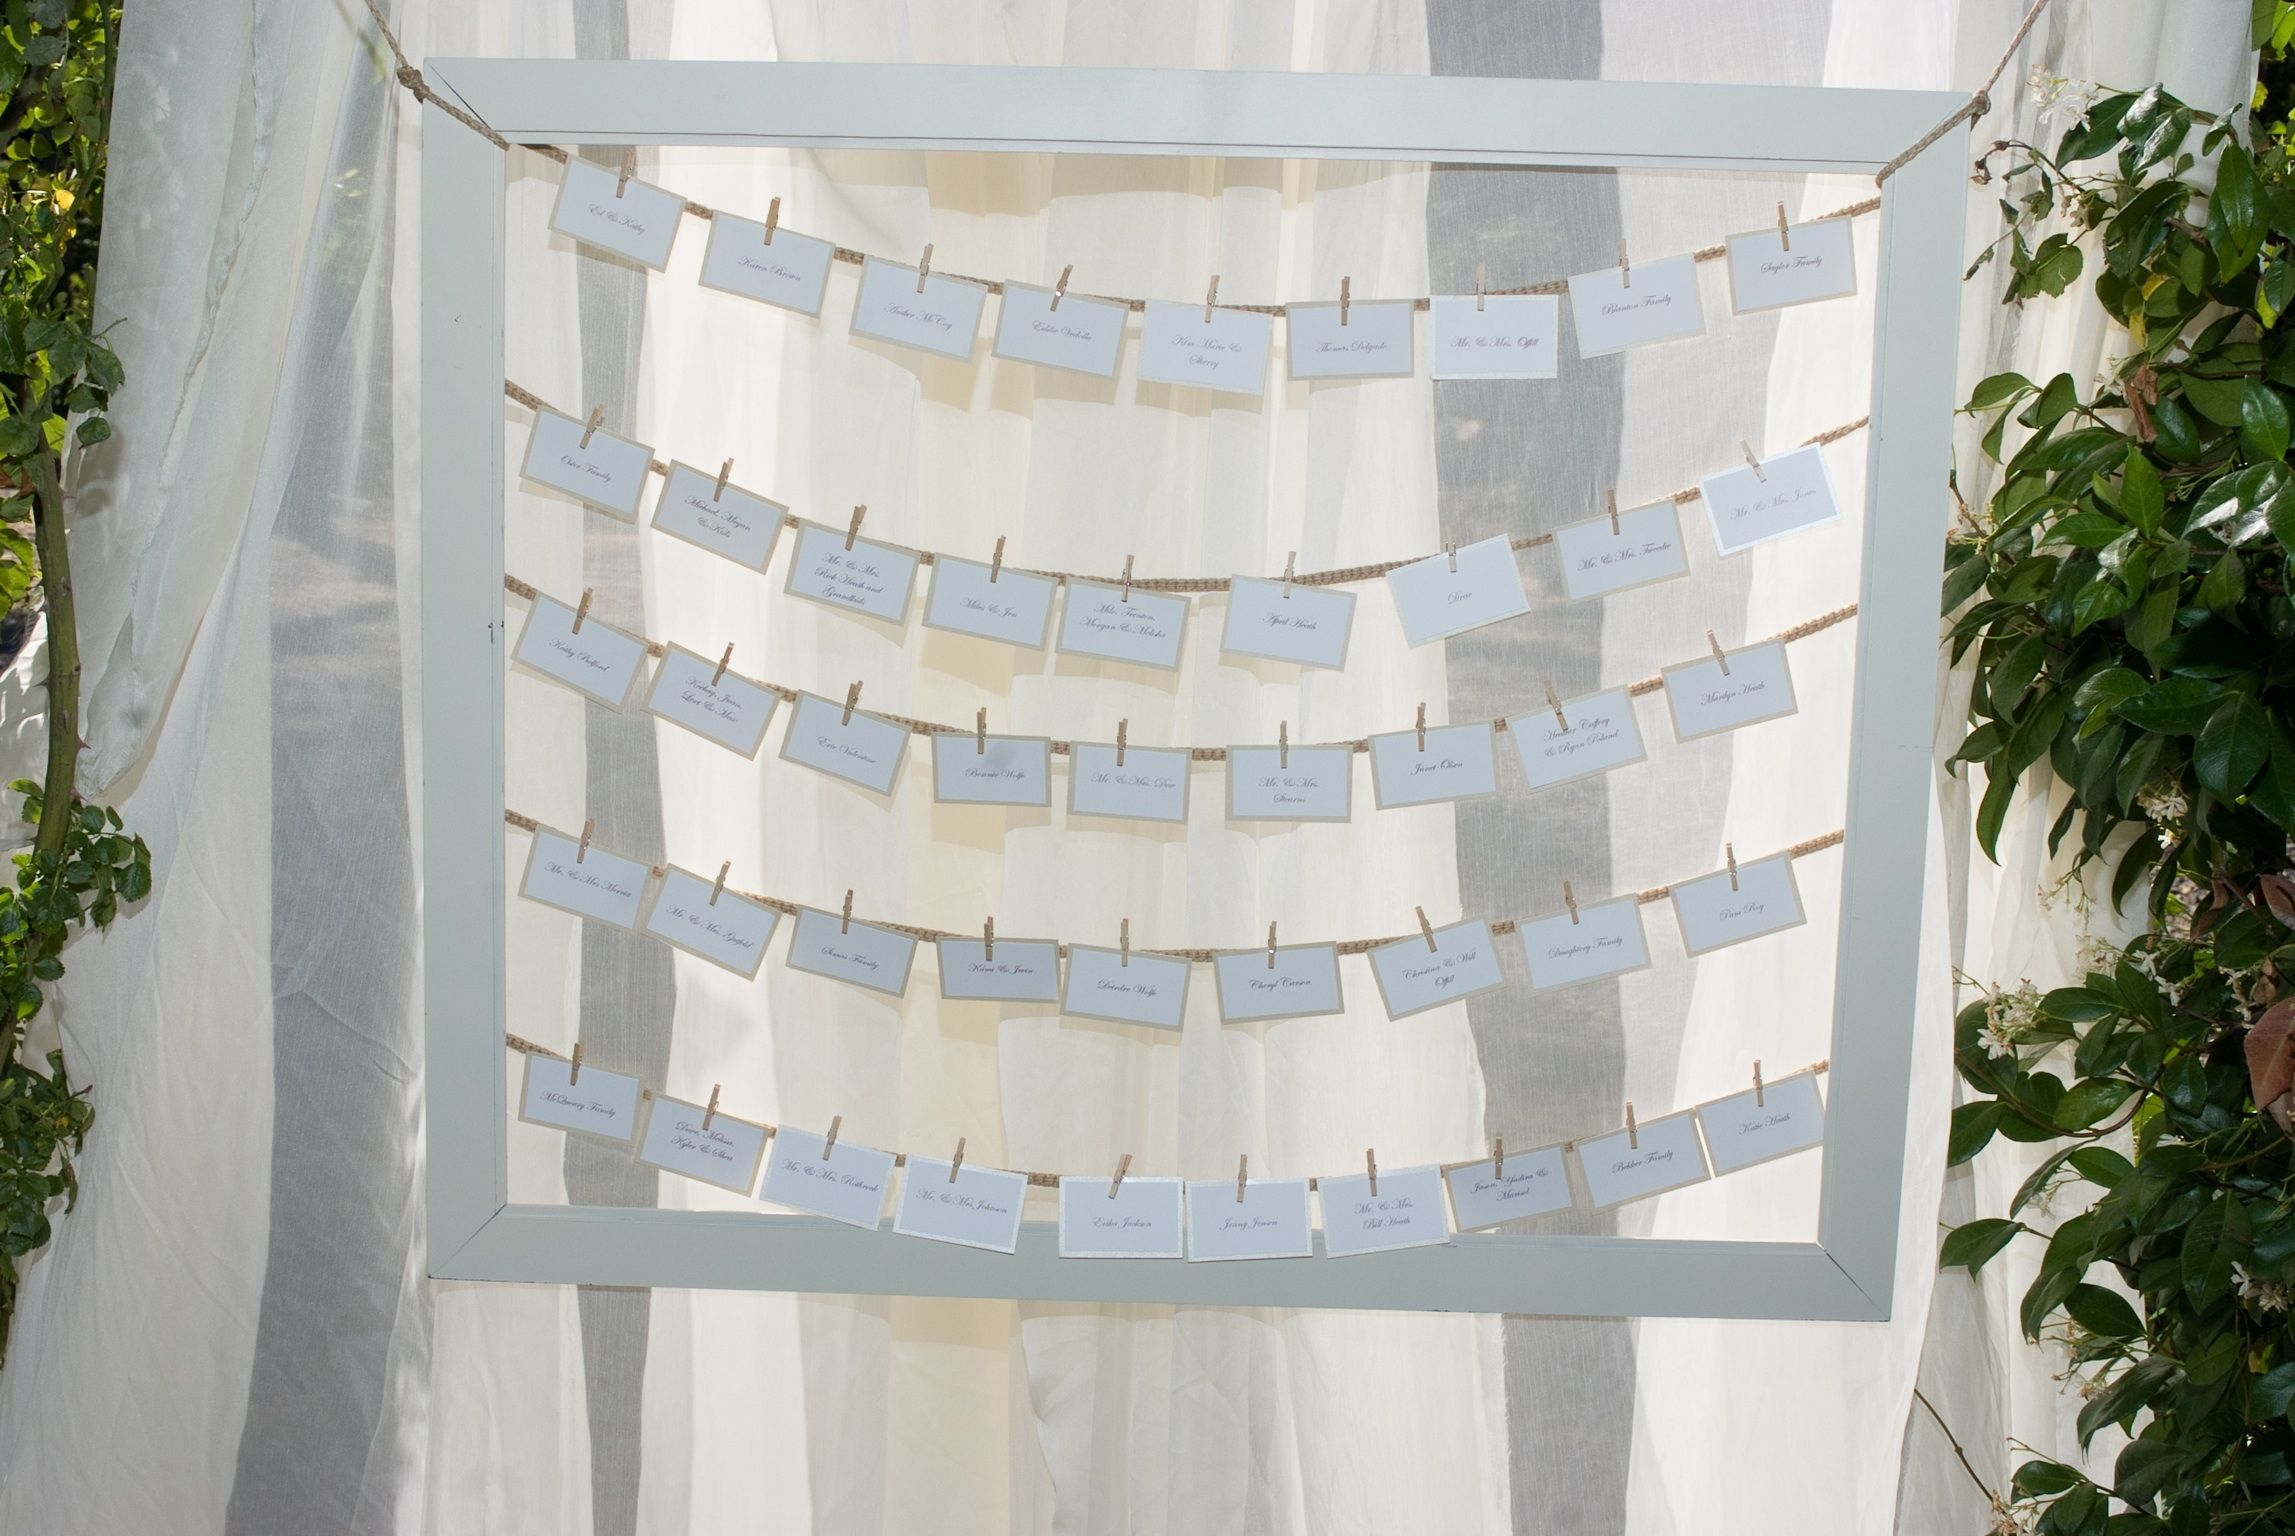 Seating chart: spray painted an old frame from good will and hung it in an arch with sheer material draped behind it!